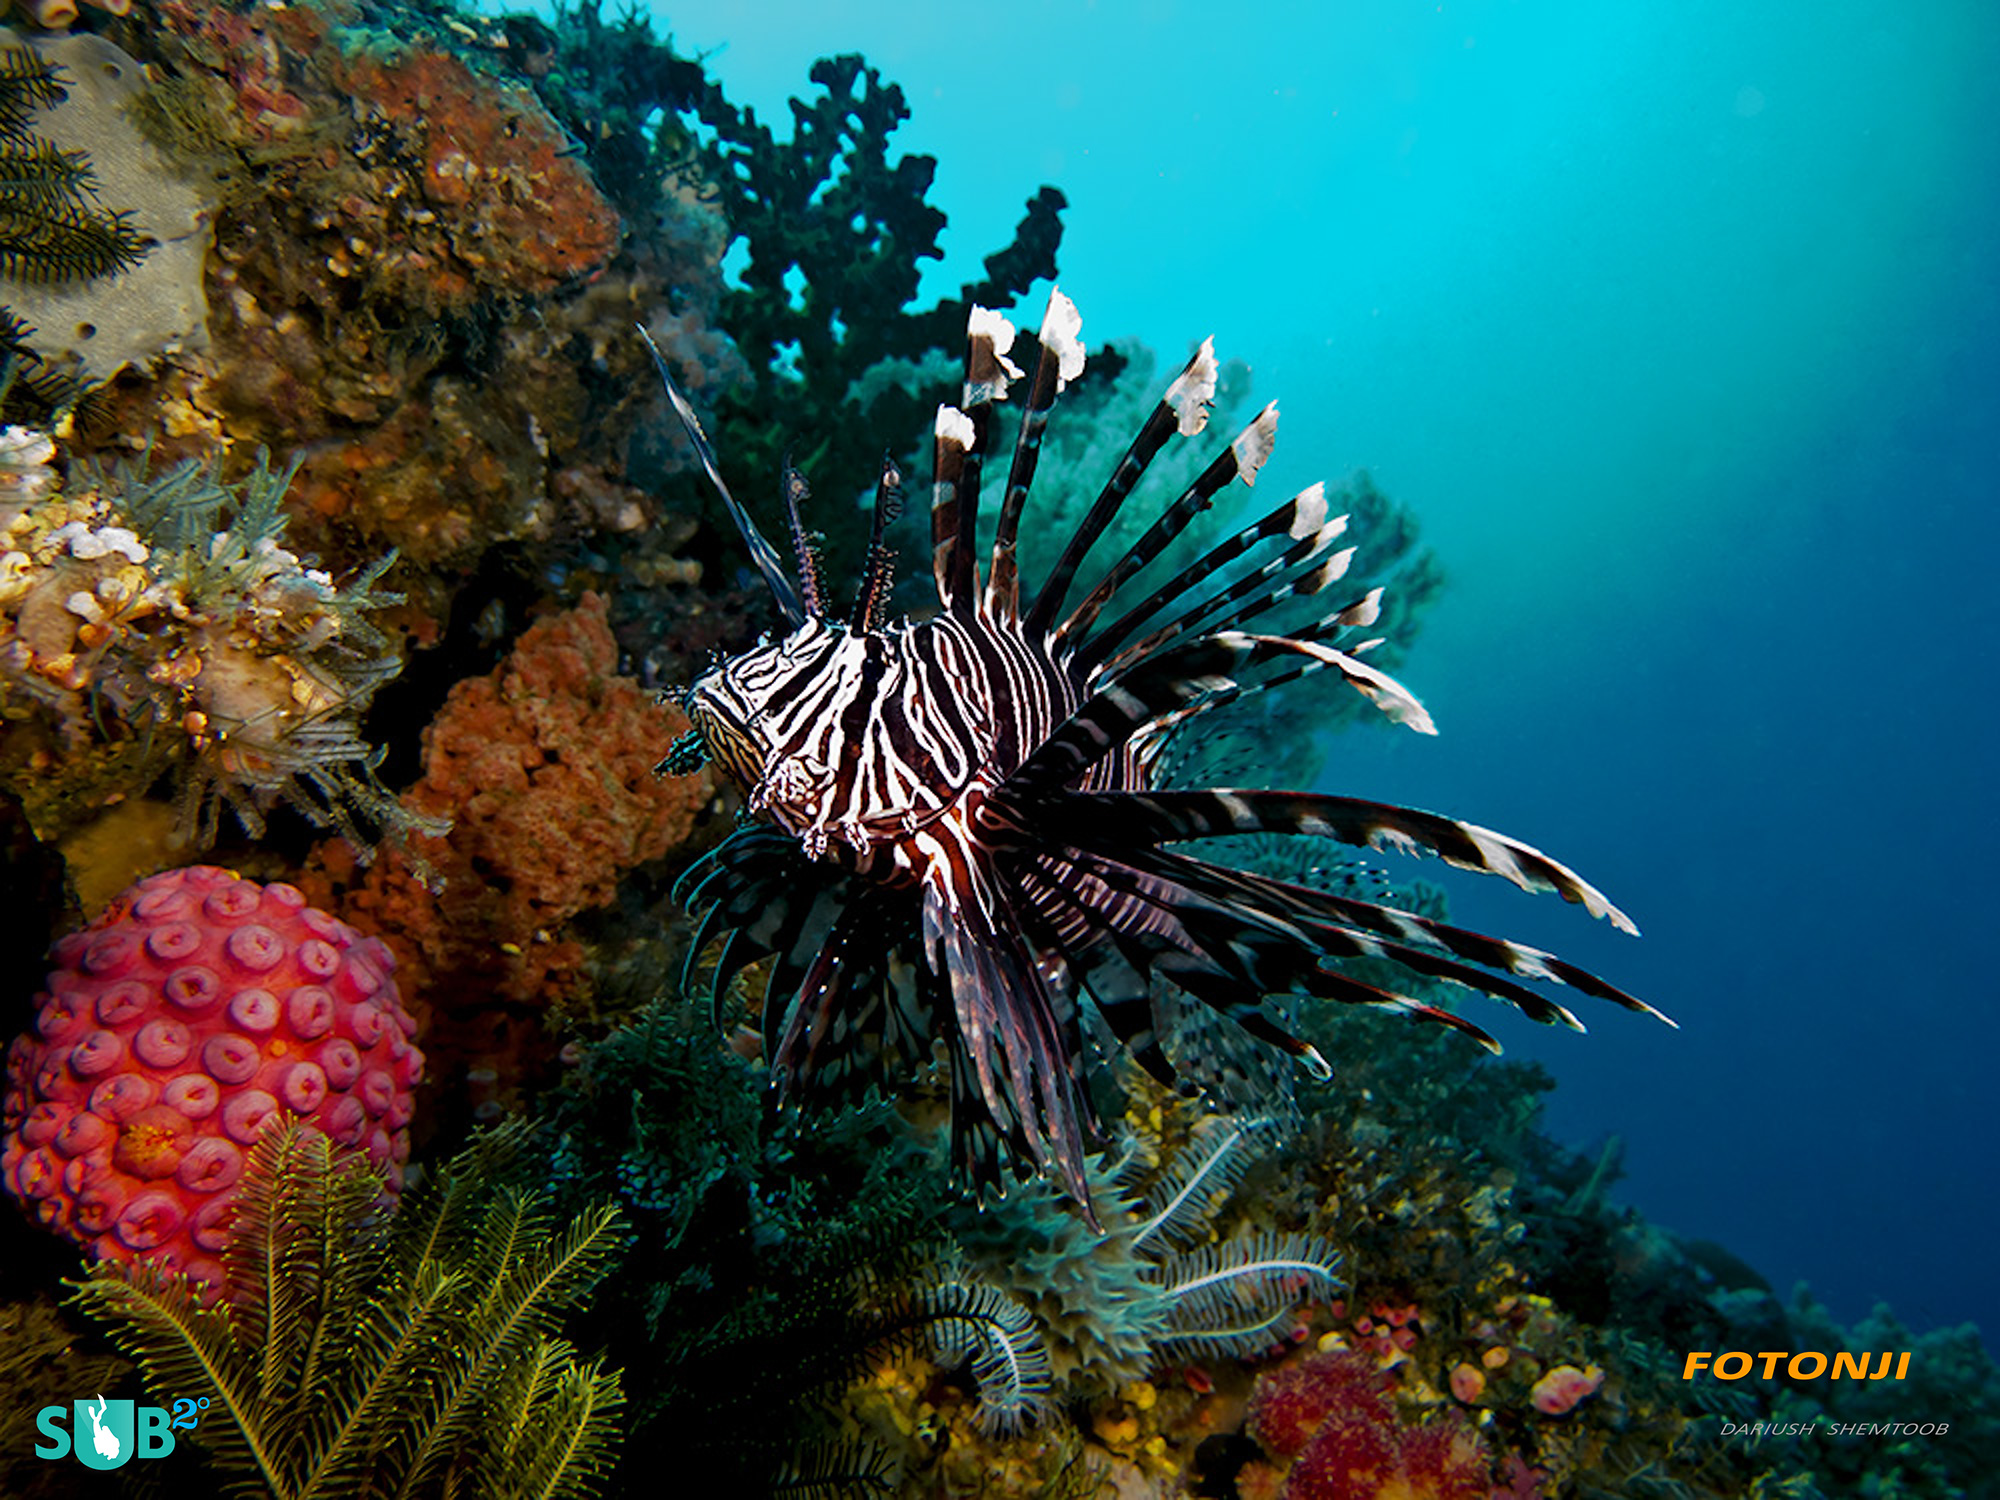 Lionfish at Komodo National Park